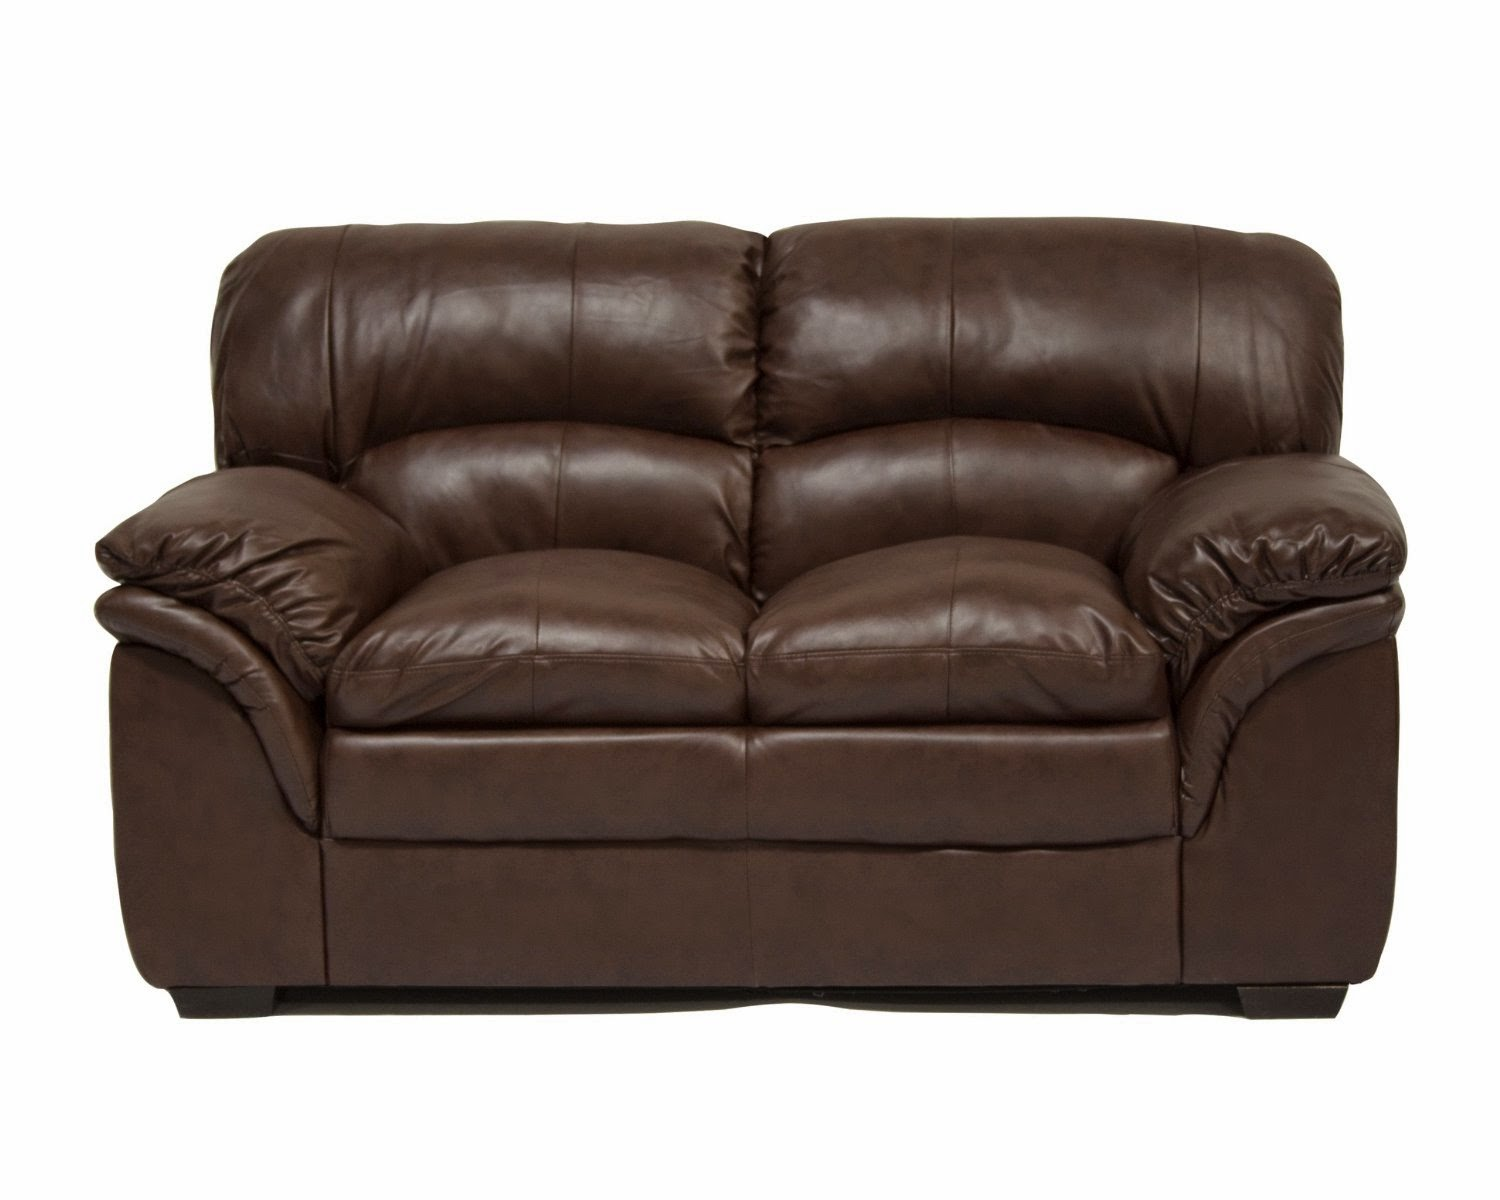 Cheap reclining sofas sale 2 seater leather recliner sofa for Leather sofas for sale